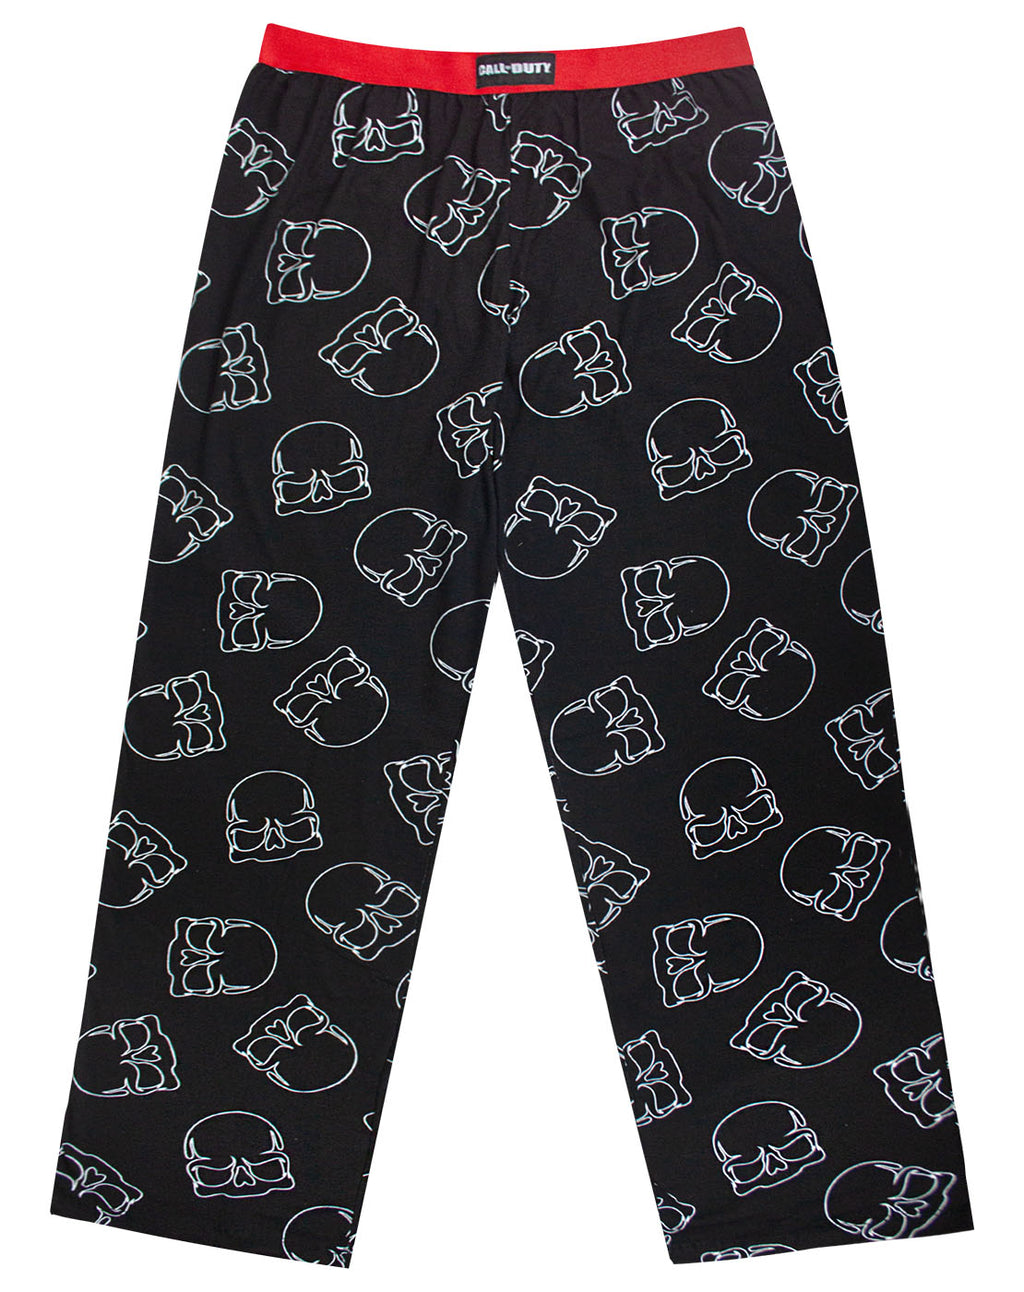 Call Of Duty Skull All Over Print Men's Loungepant